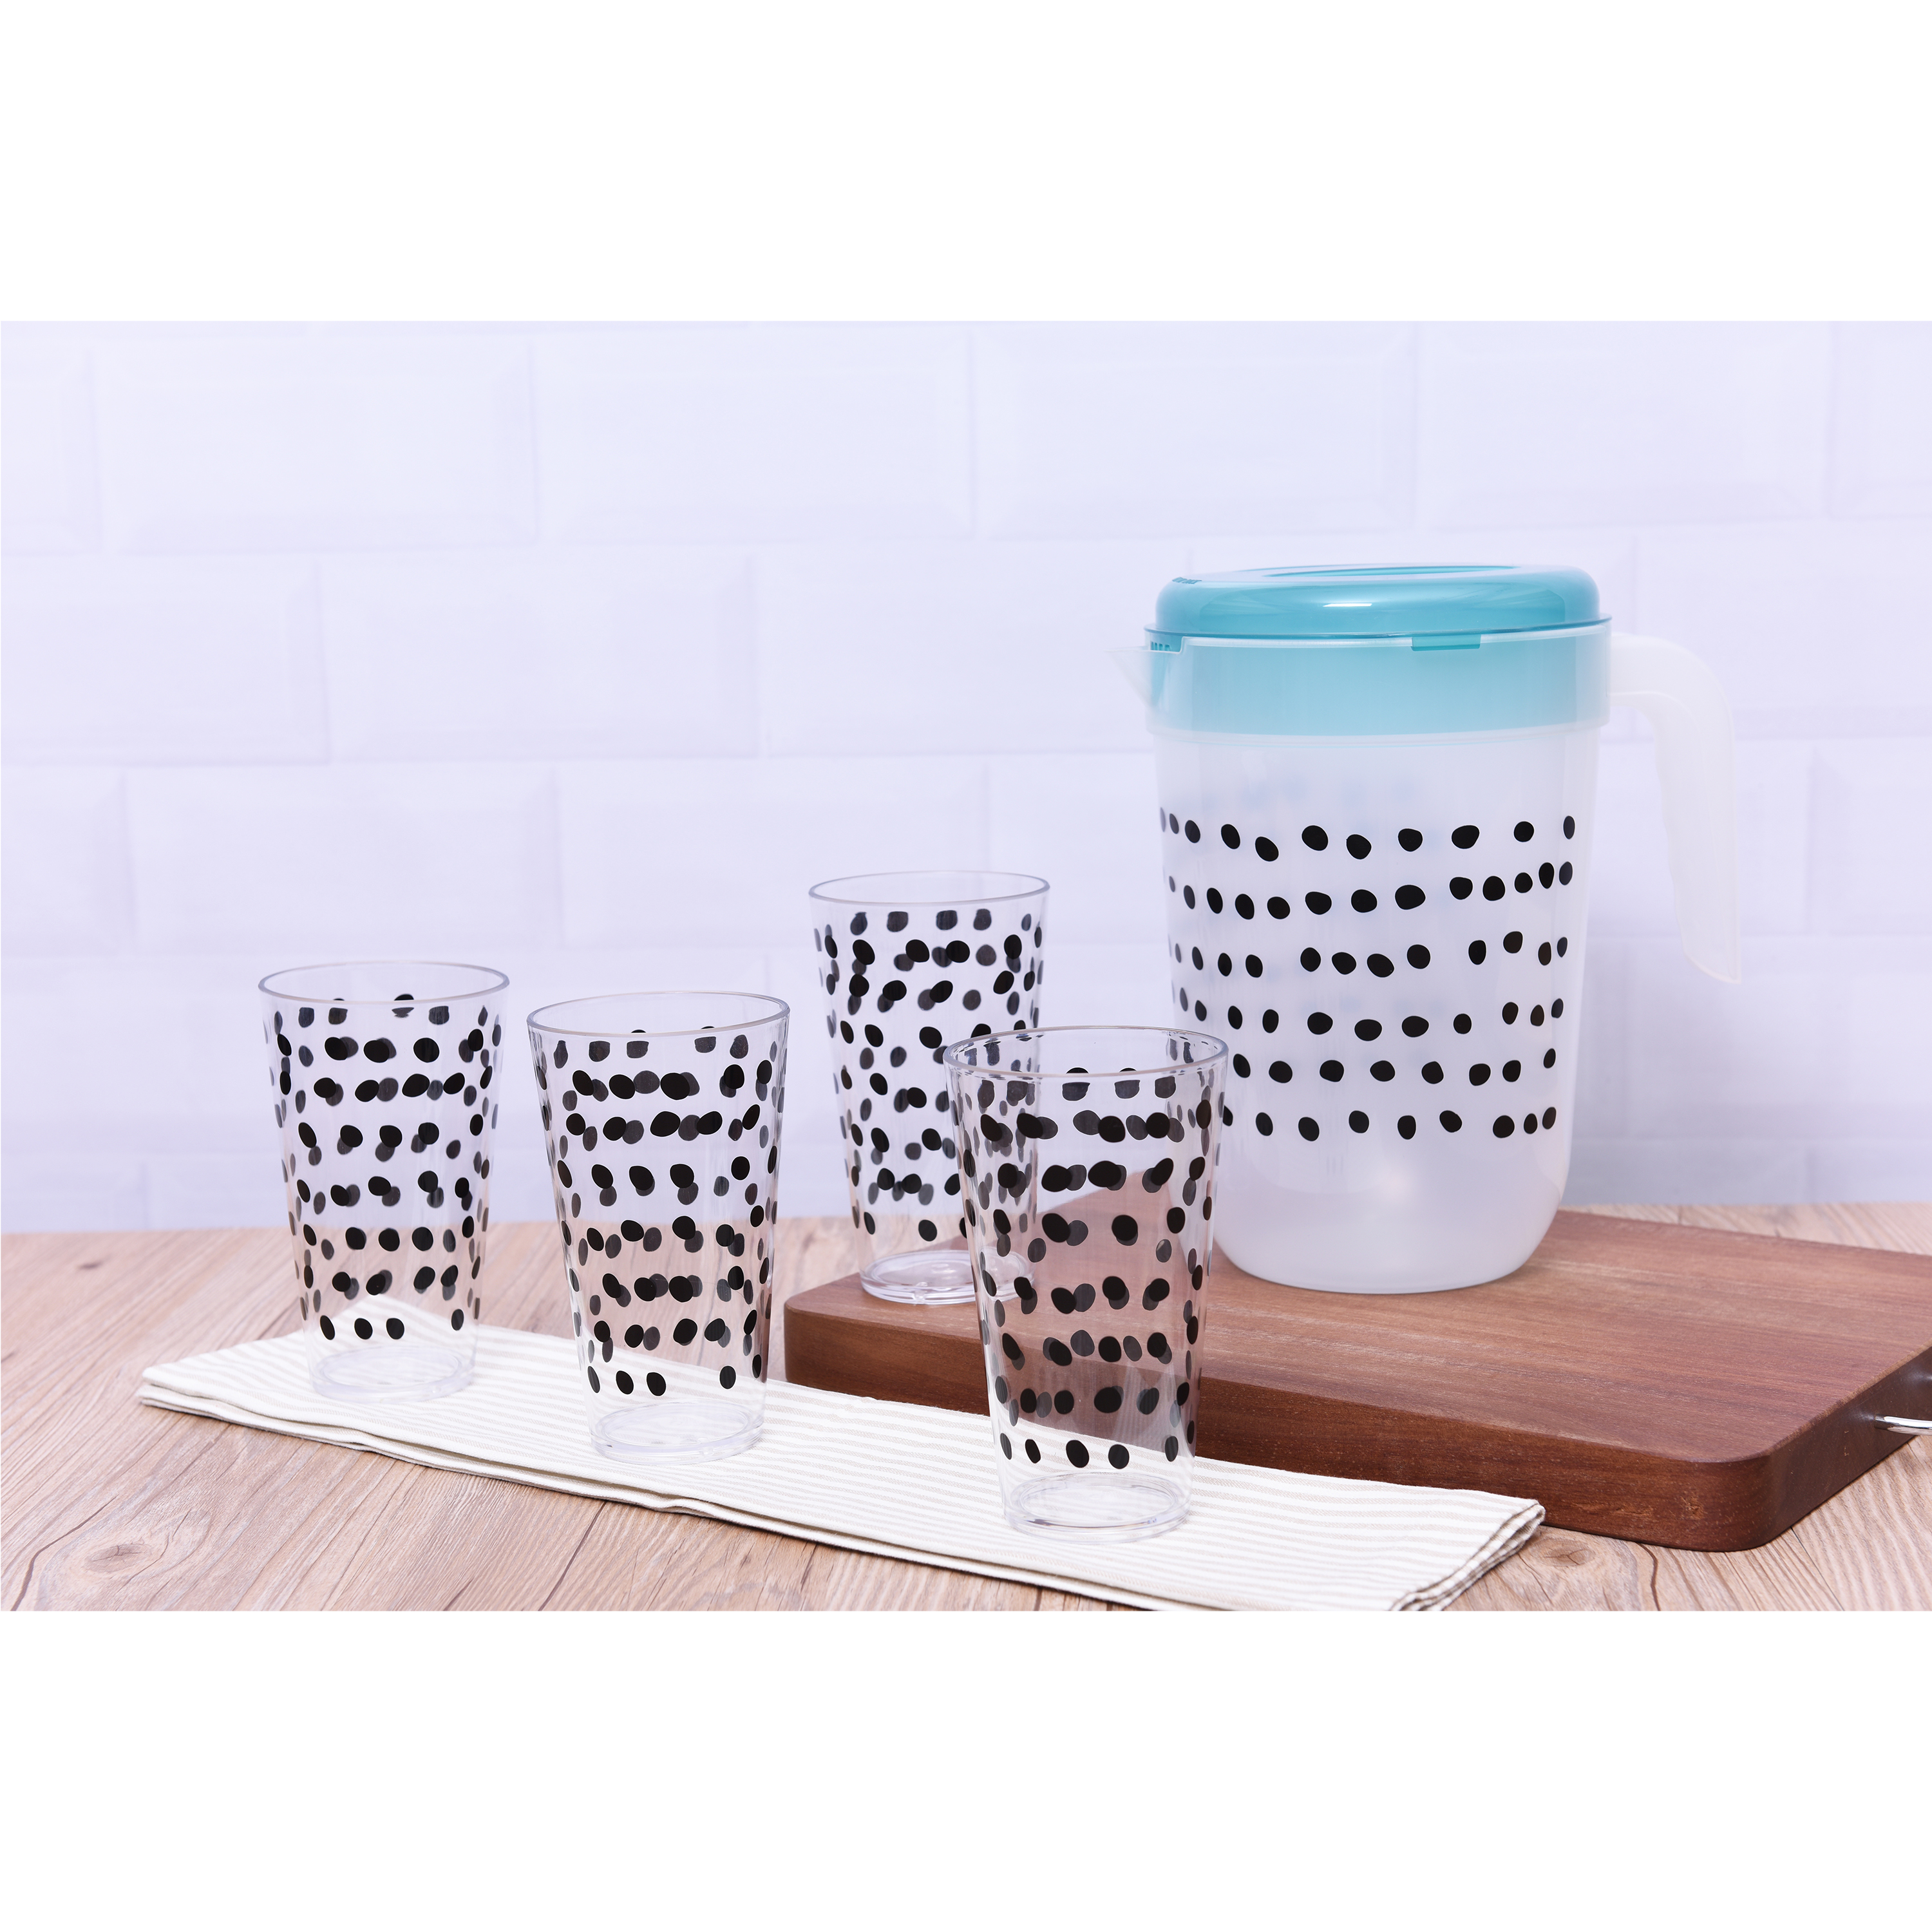 Mainstays 5-Piece Sprinkle Tumbler and 1 Gallon Pitcher Set, Walmart Exclusive